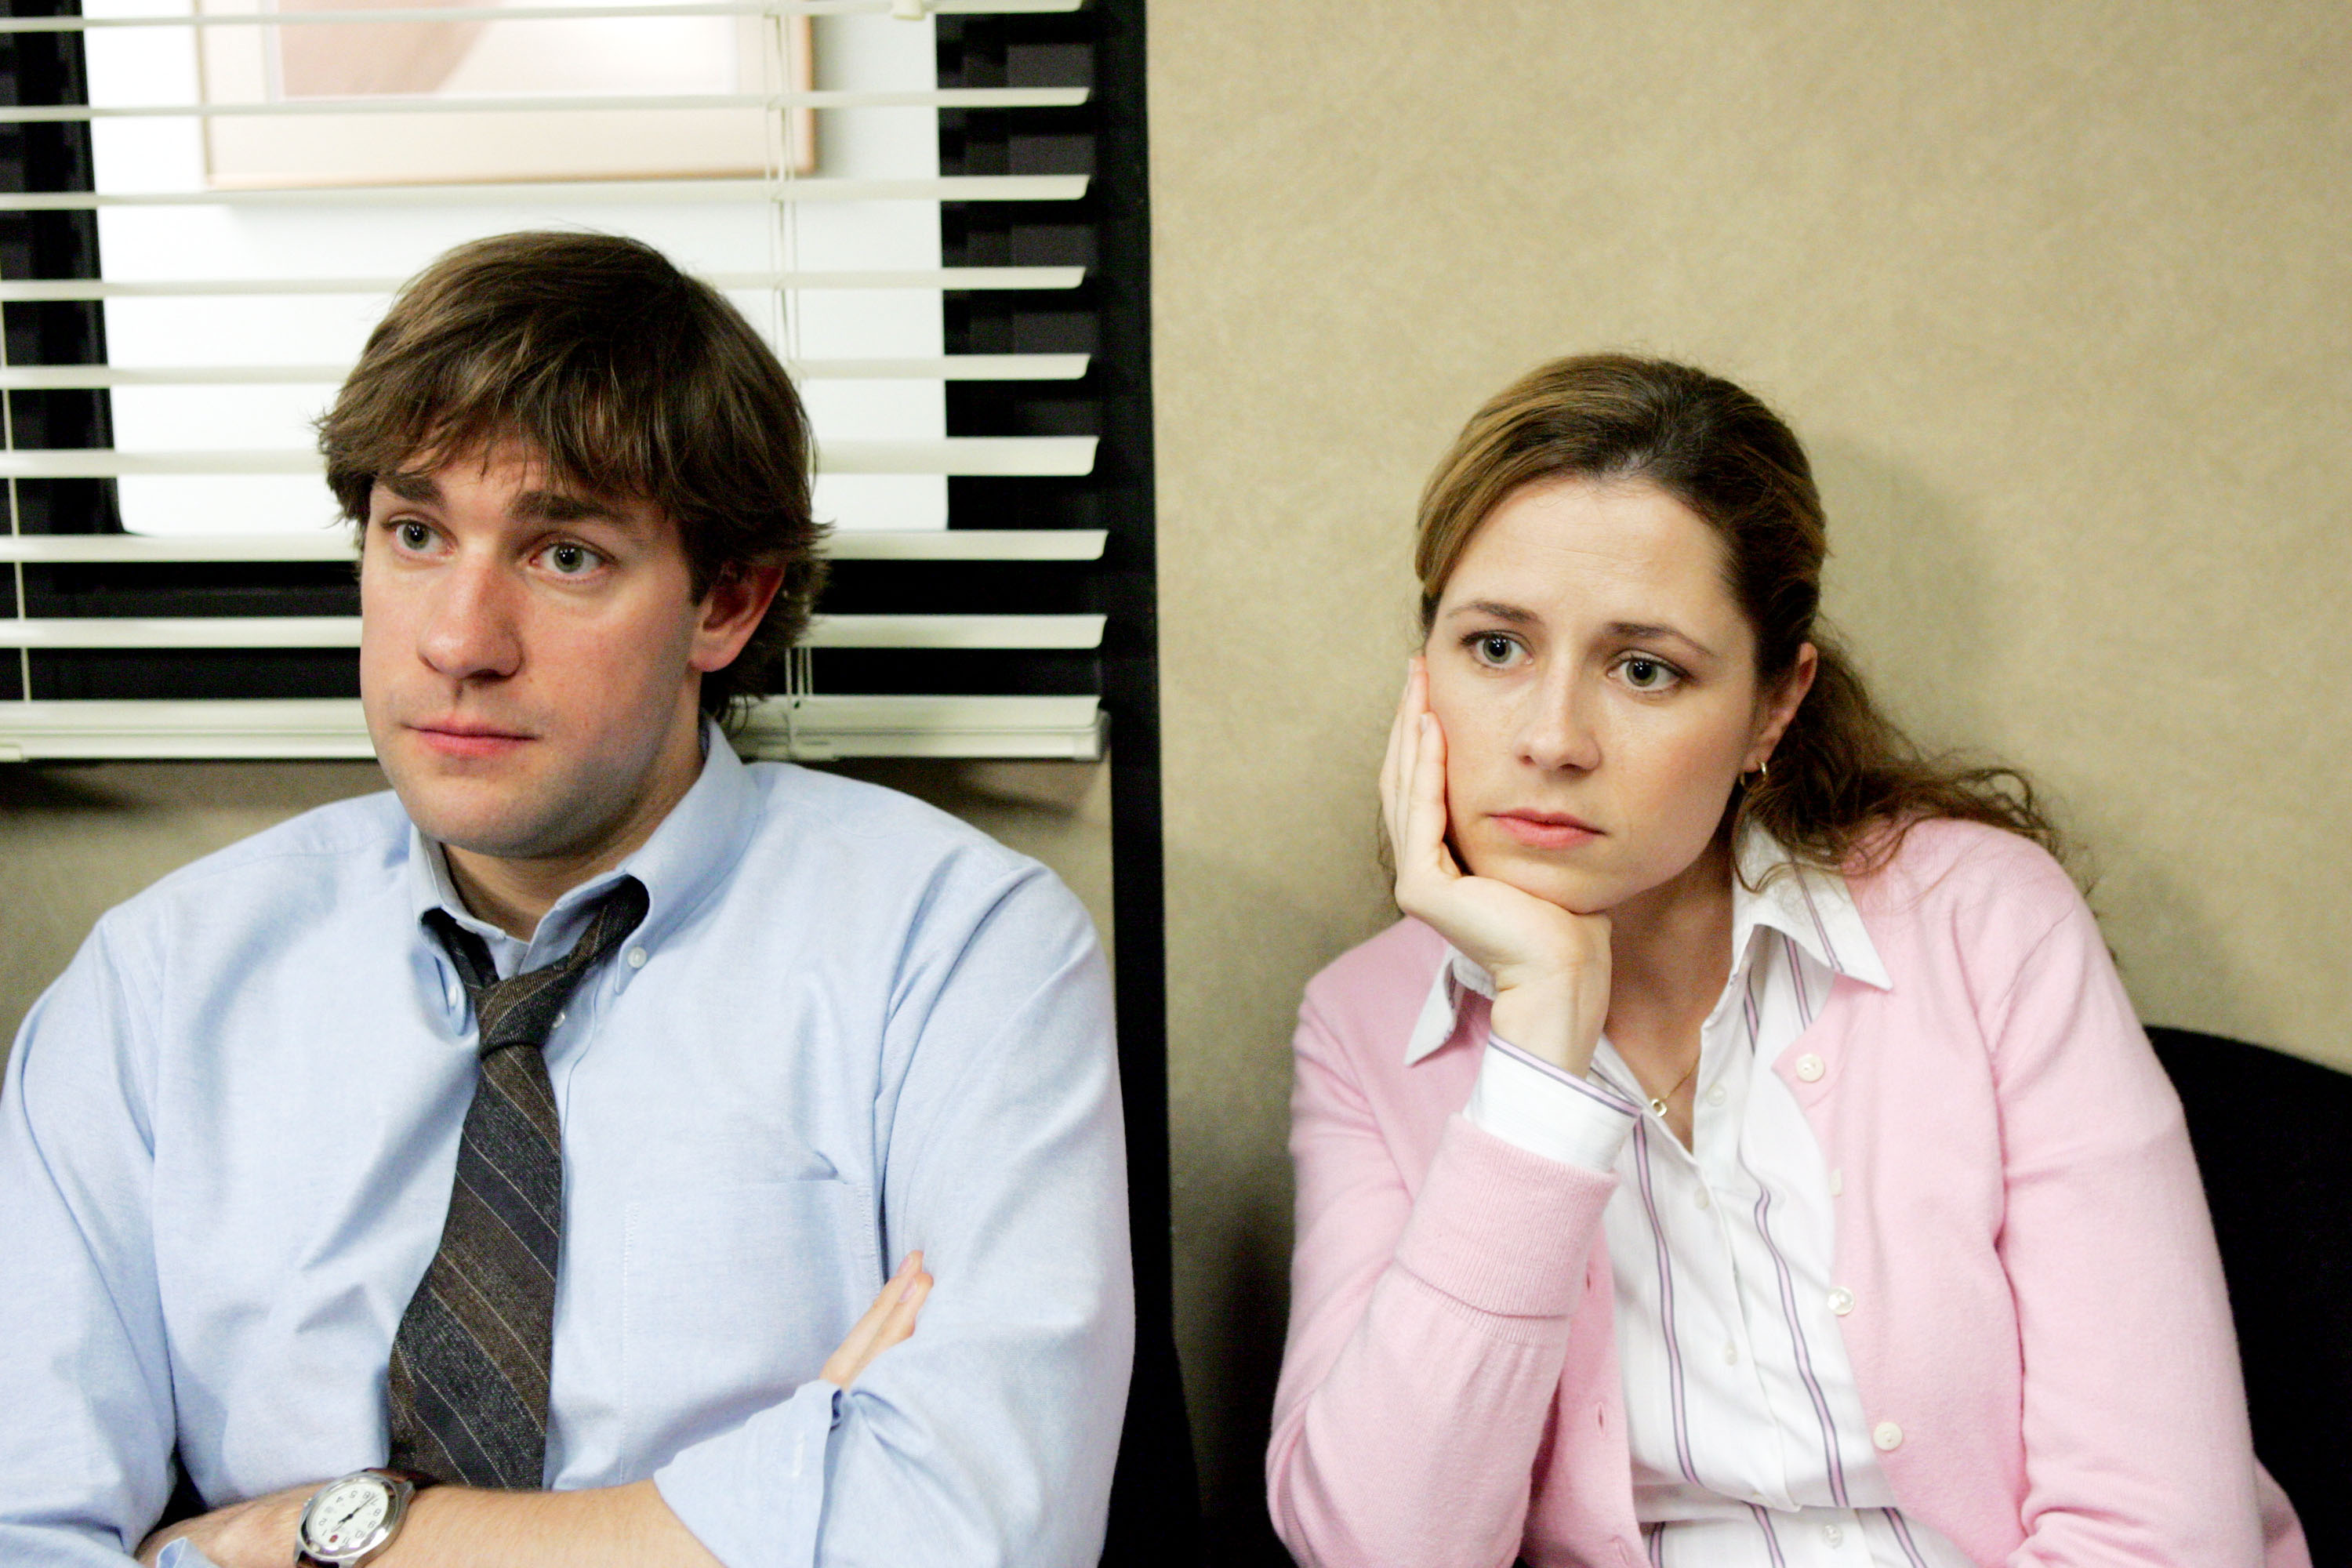 'The Office' to Leave Netflix After 2020, as NBCUniversal Announces Exclusive Streaming Rights